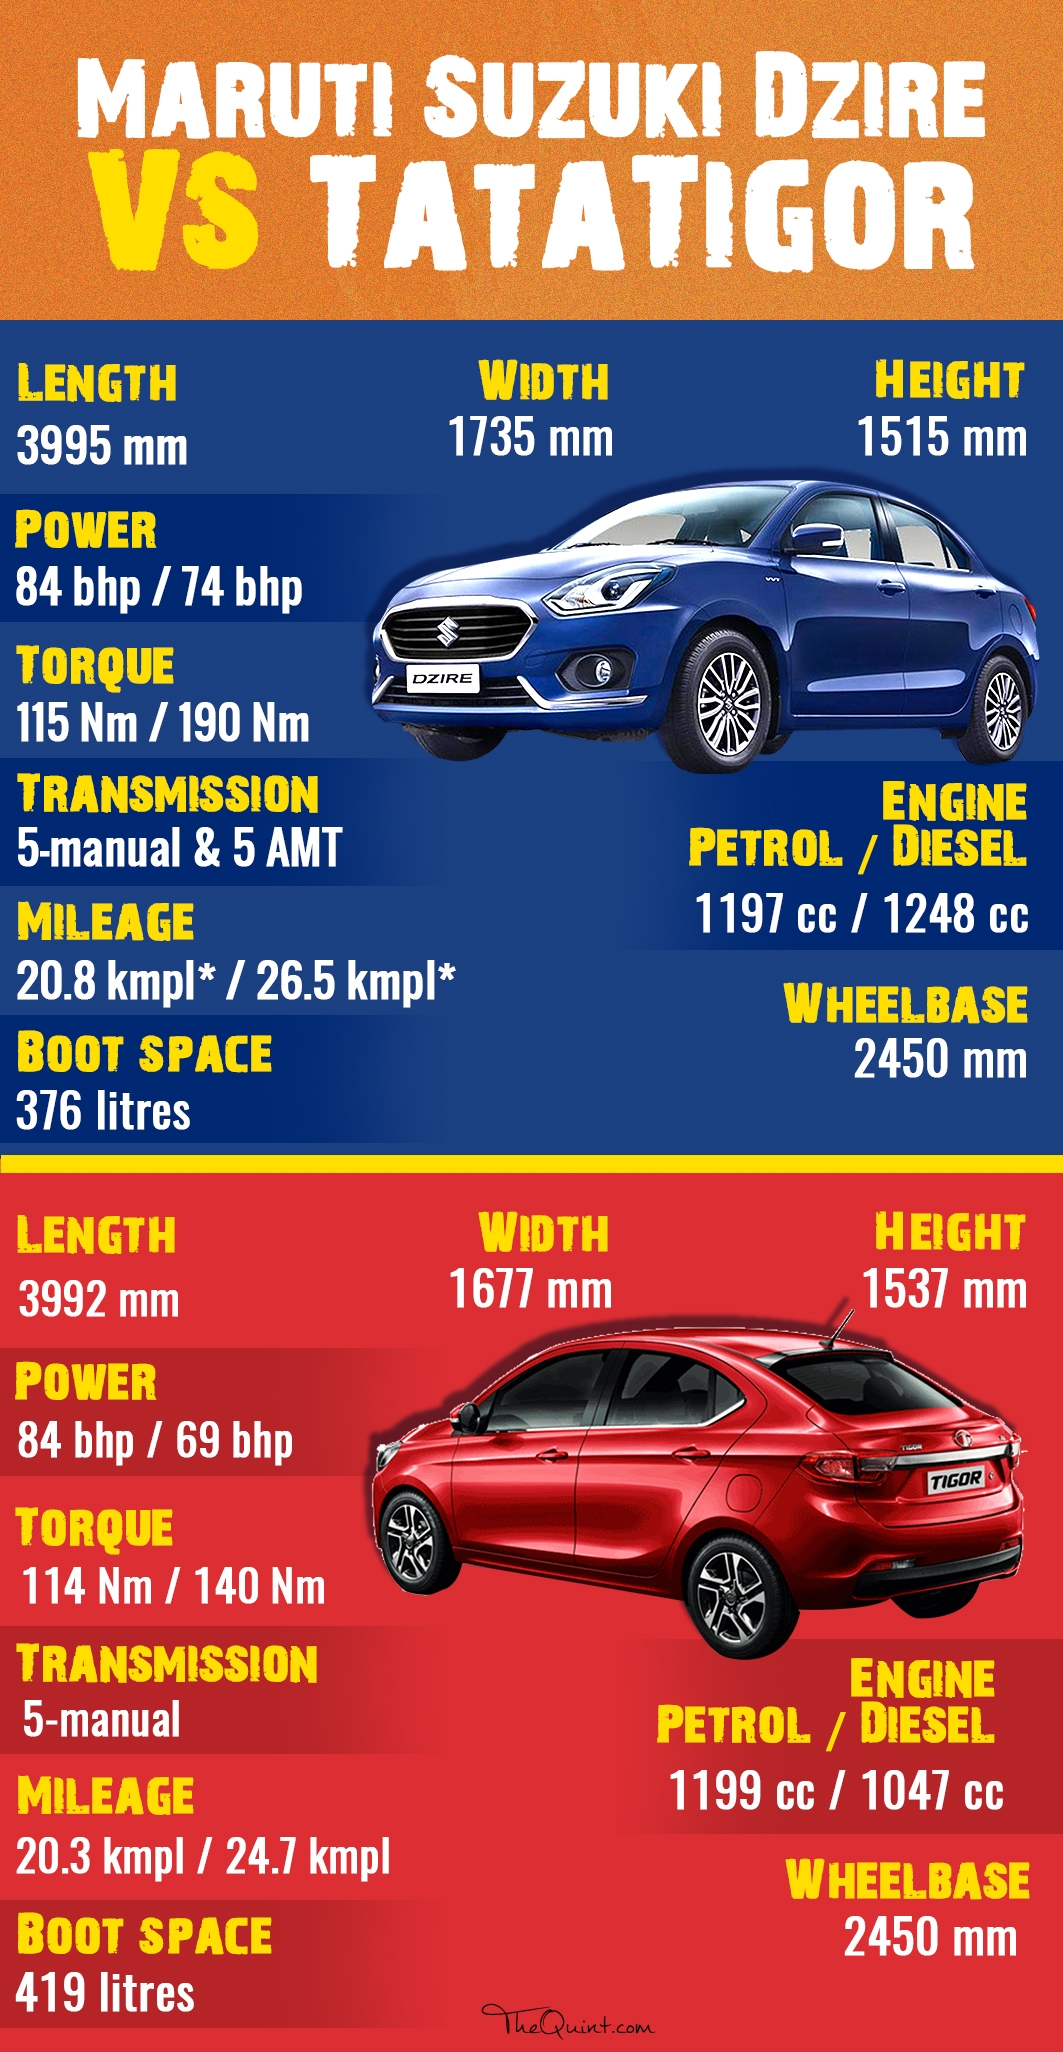 Maruthi engine manual 2018 swift diesel manual engine u0026 performance array maruti dzire vs competition which is the better compact sedan rh thequint com fandeluxe Gallery